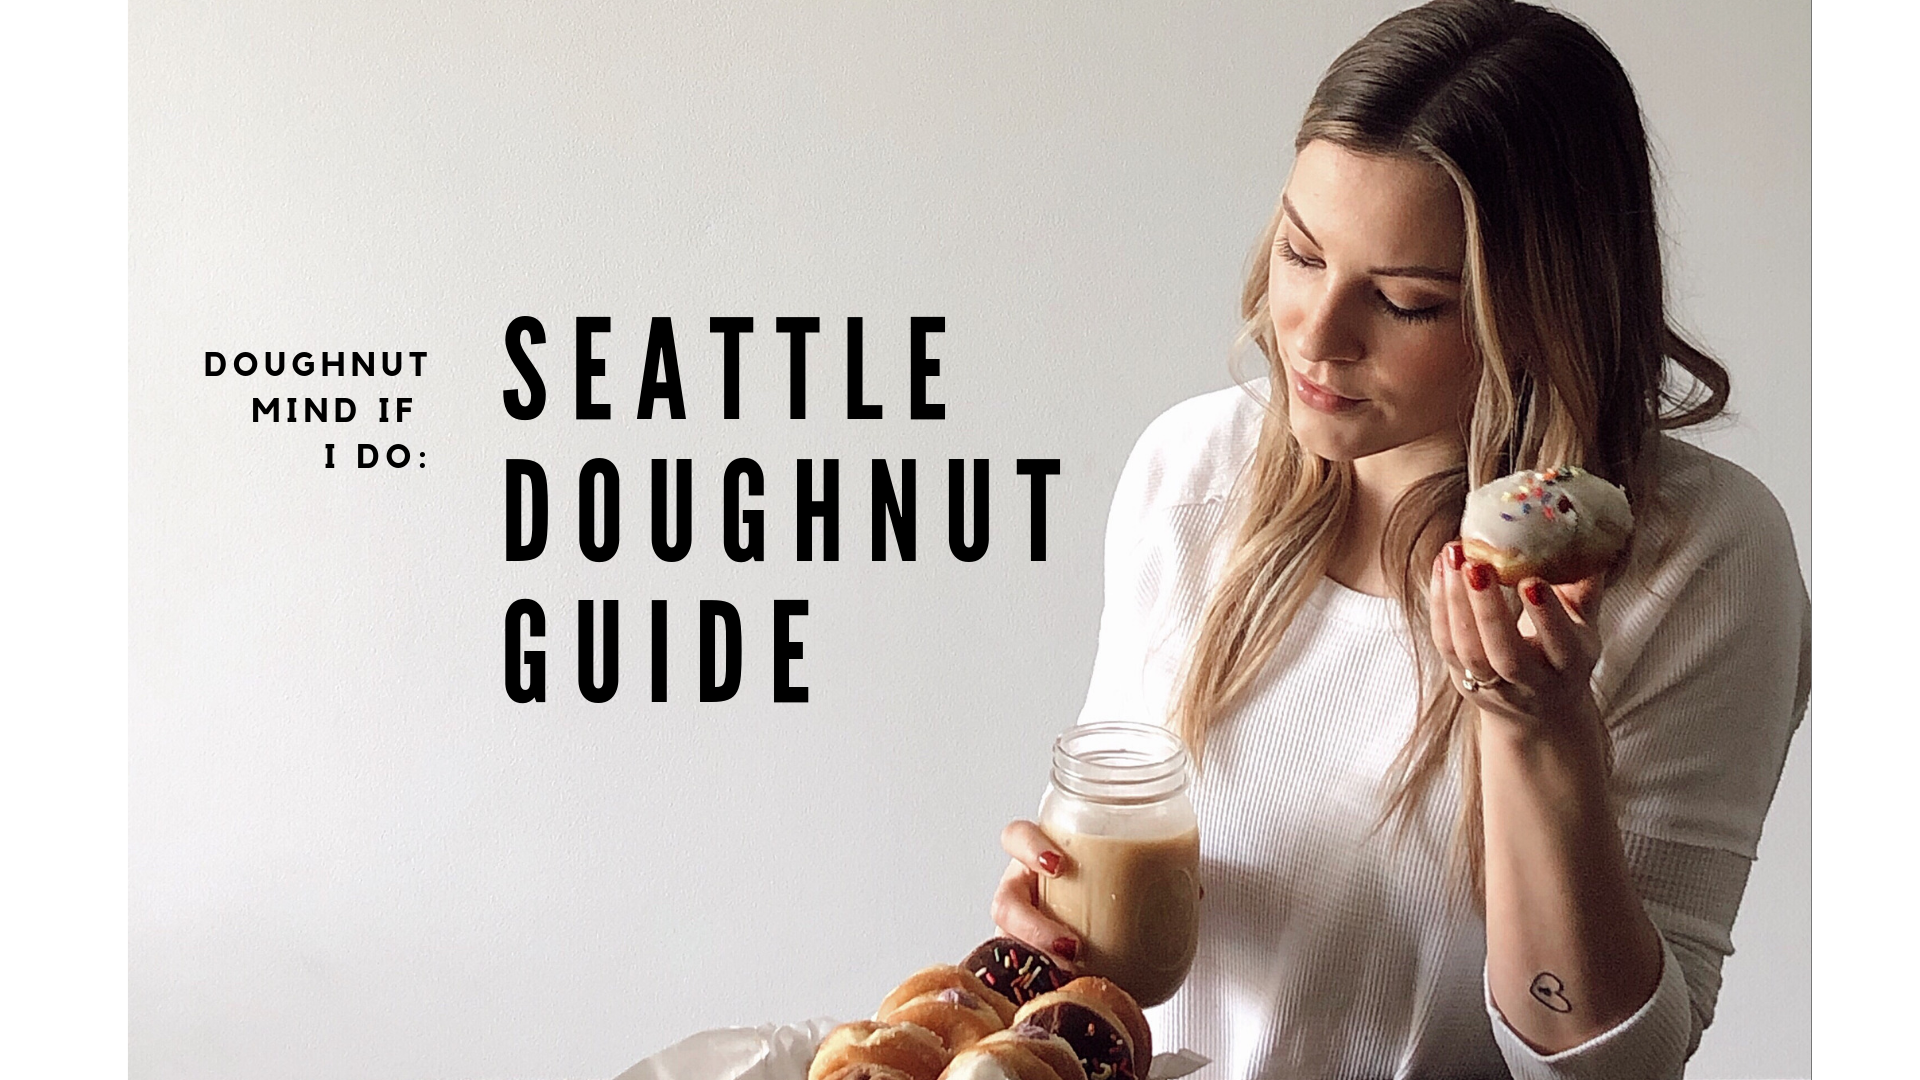 Seattle Doughnut Guide